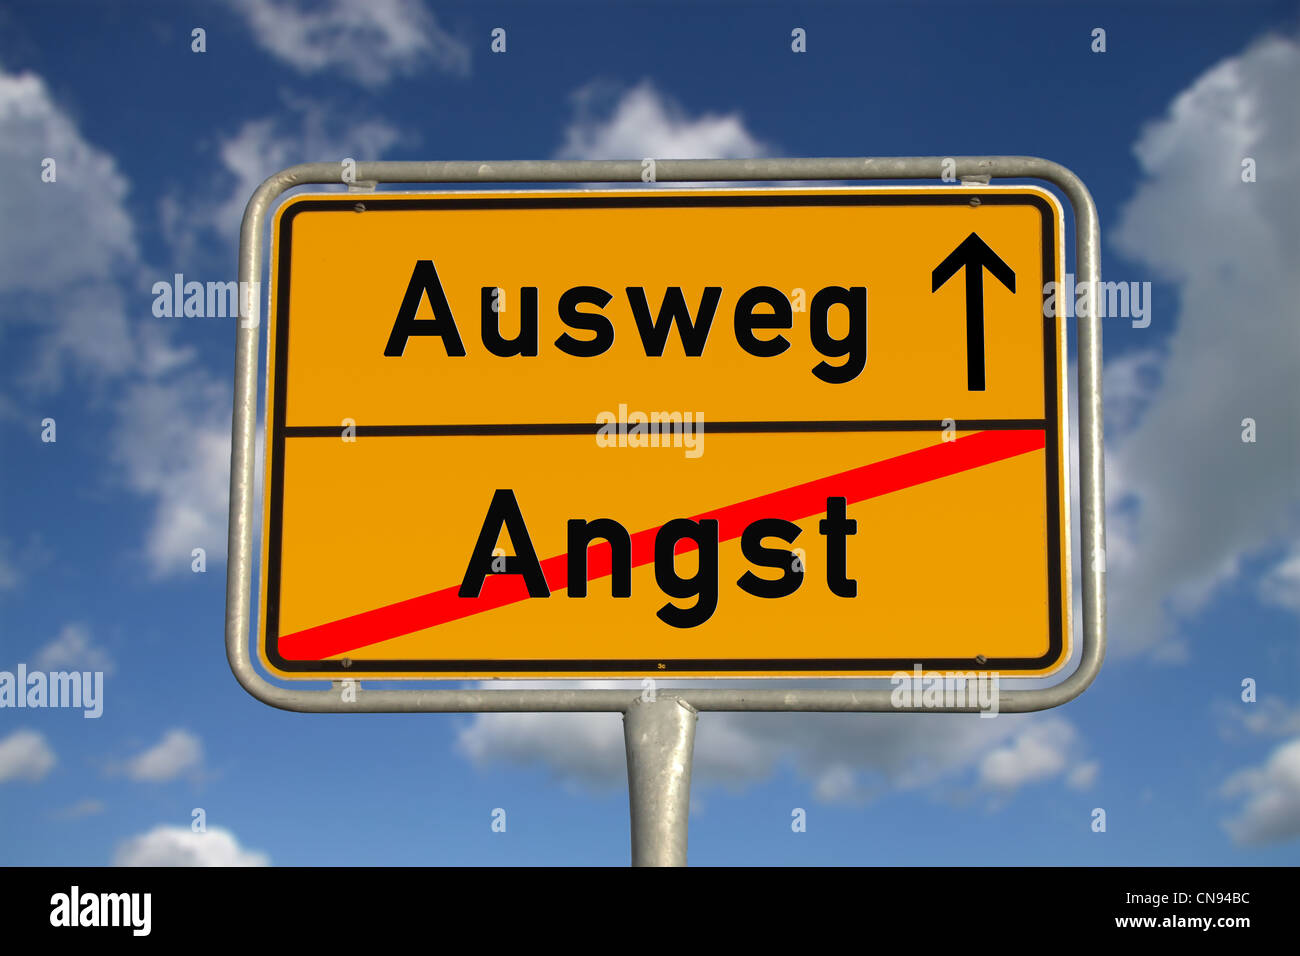 German road sign fear and way out with blue sky and white clouds - Stock Image